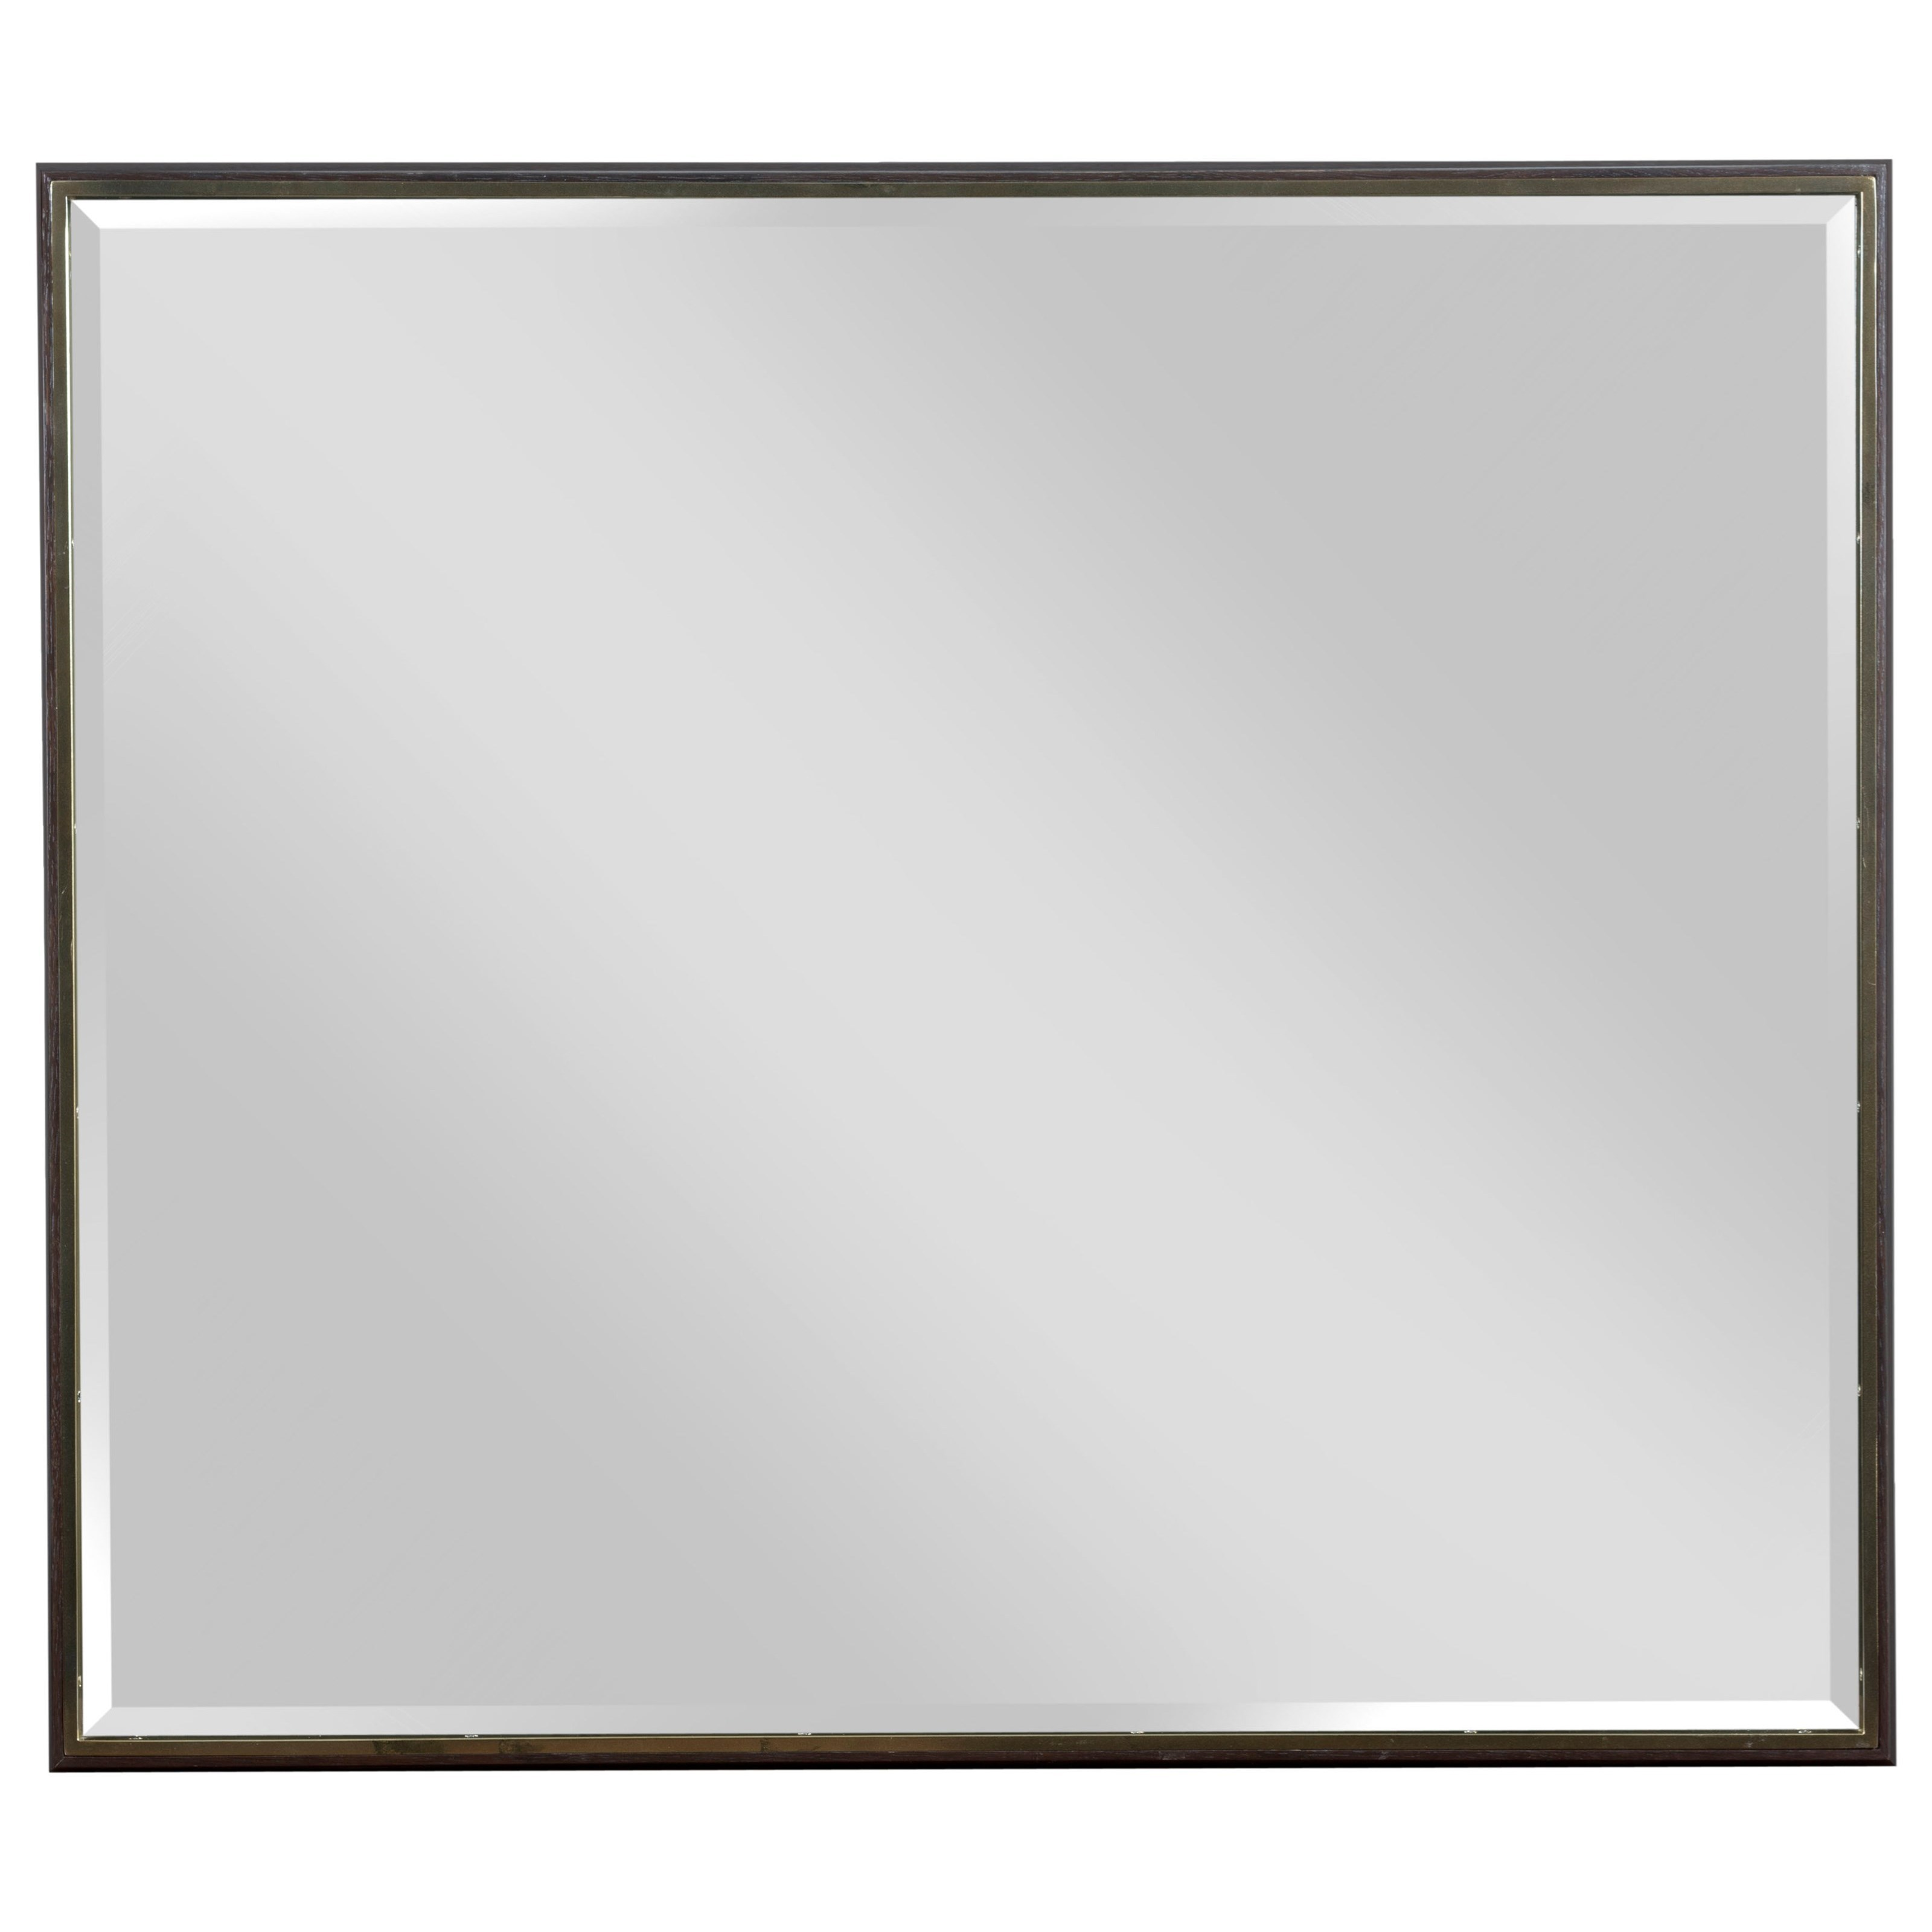 Ad Modern Organics Holt Landscape Mirror by American Drew at Alison Craig Home Furnishings